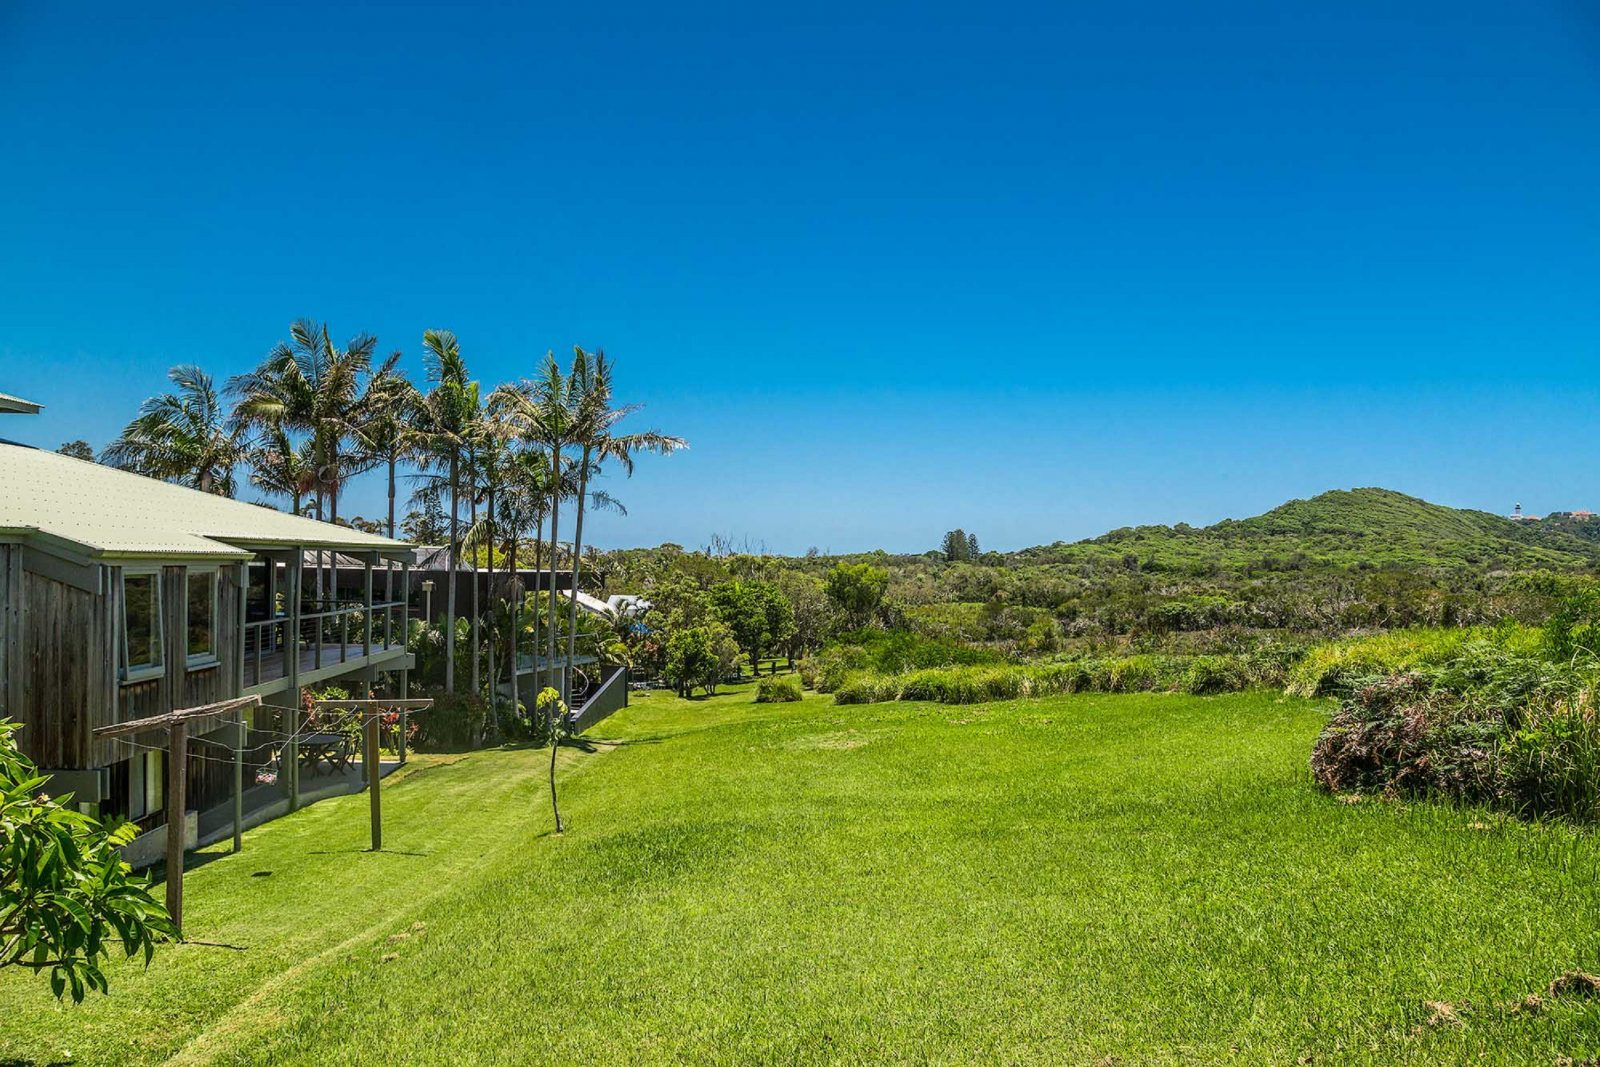 Cape Breeze - Byron Bay - House and Reserve